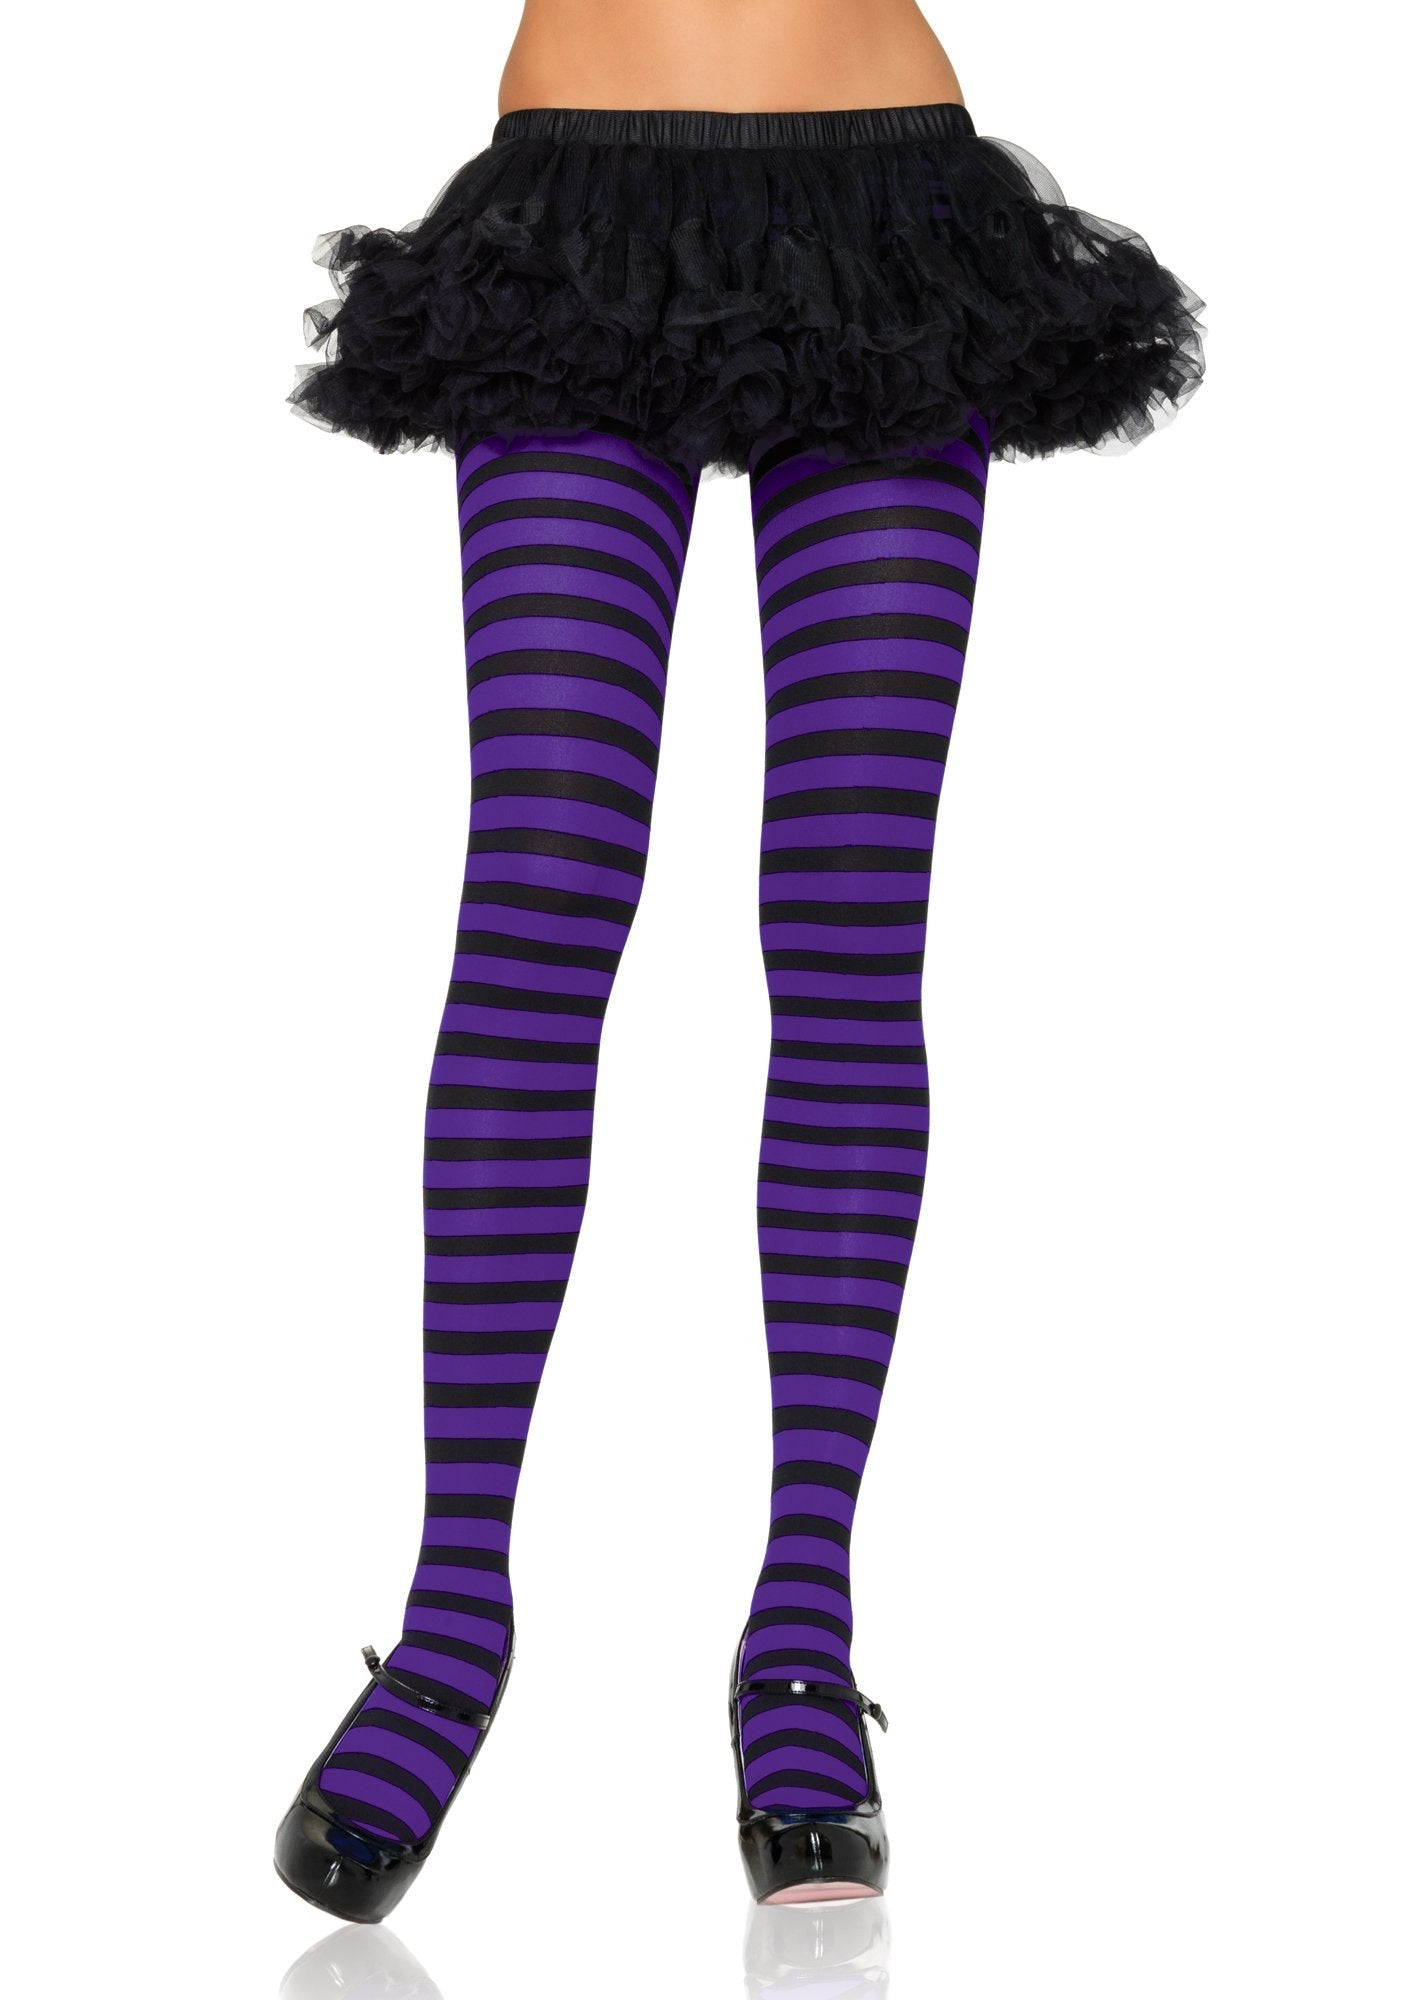 Leg Avenue Costume Accessories BLACK/PURPLE / O/S Adult Nylon Stripe Tights